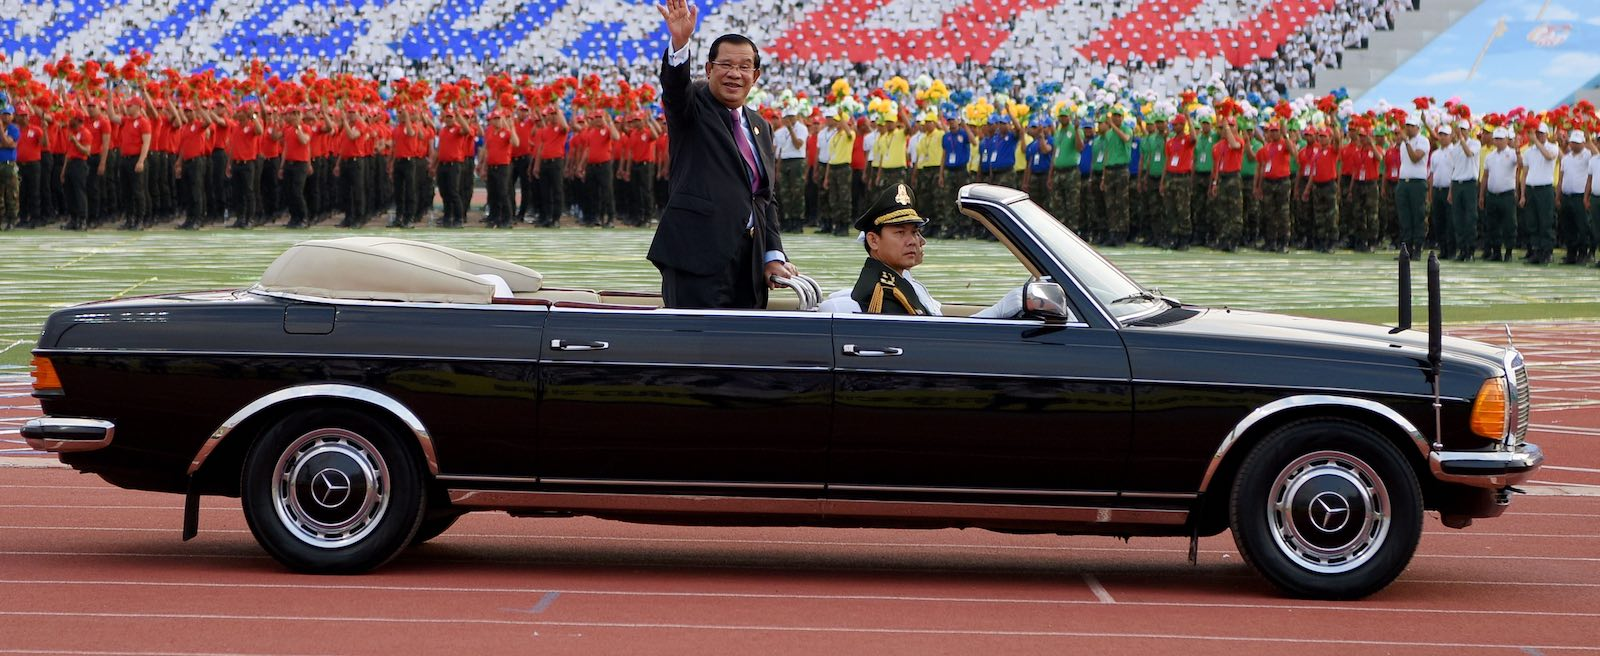 Cambodia's Hun Sen at a 7 January ceremony to mark the 40th anniversary of the fall of the Khmer Rouge regime (Photo: Tang Chhin Sothy via Getty)